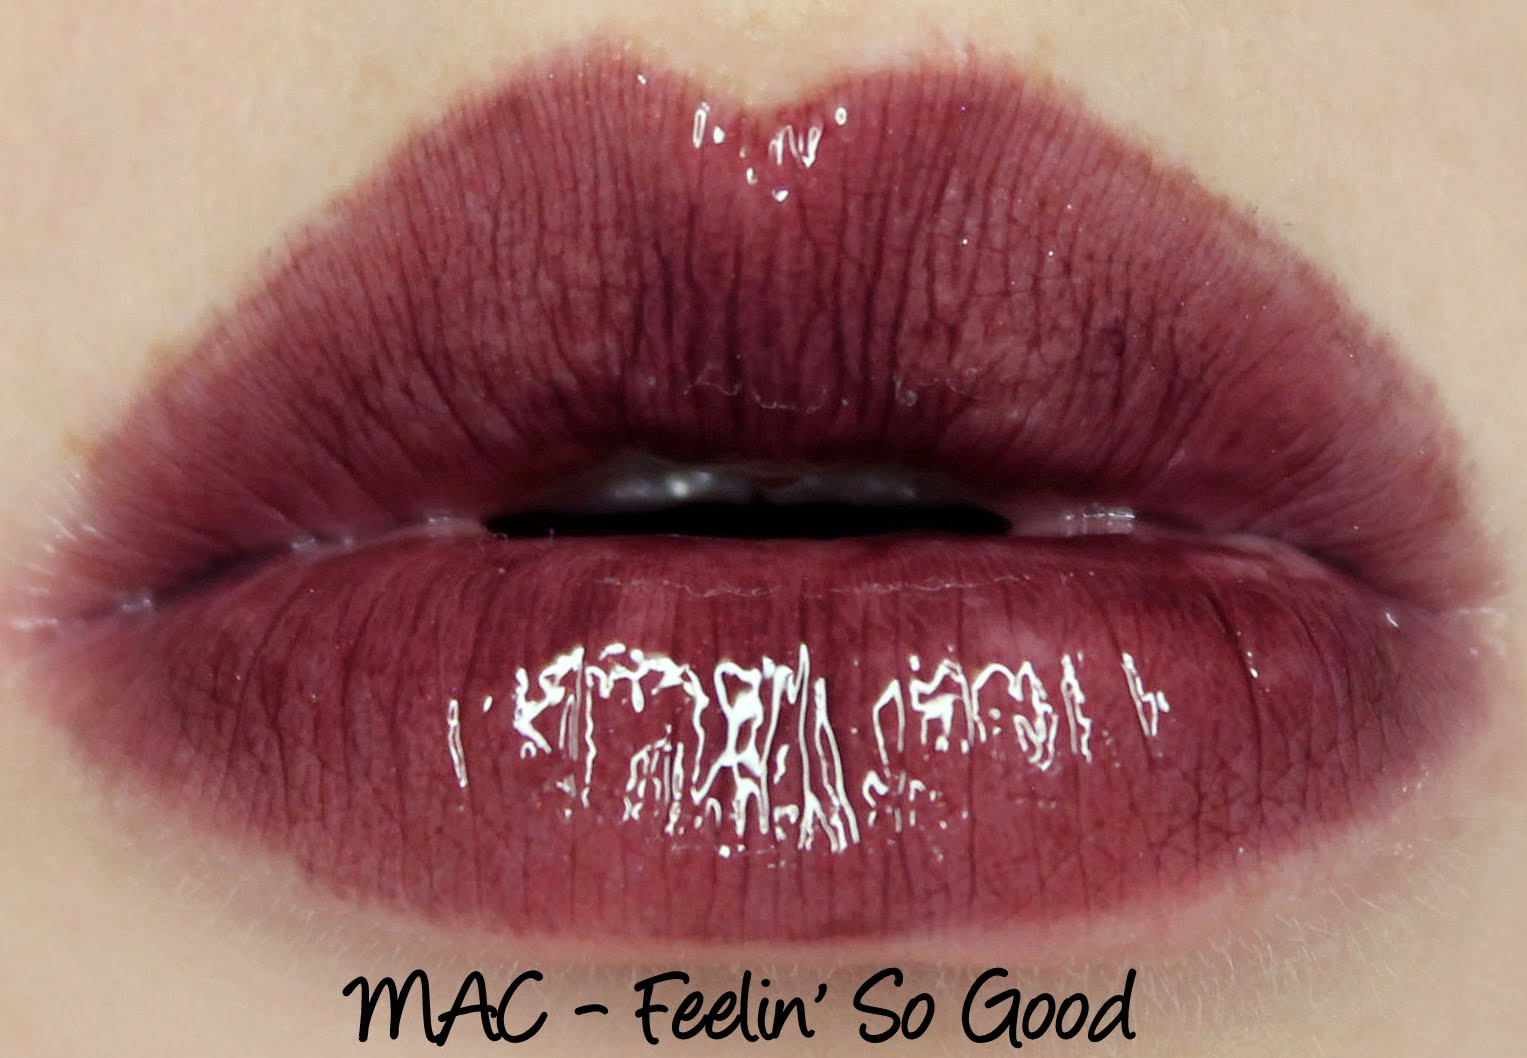 MAC Monday: Archie's Girls - Feelin' So Good Lipglass Swatches & Review